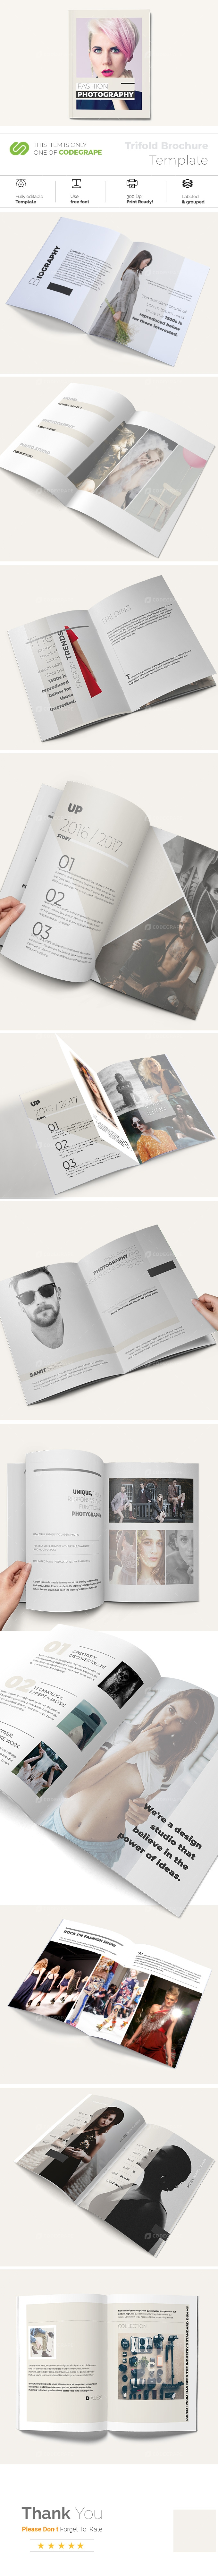 Fashion and Photography Brochure Template